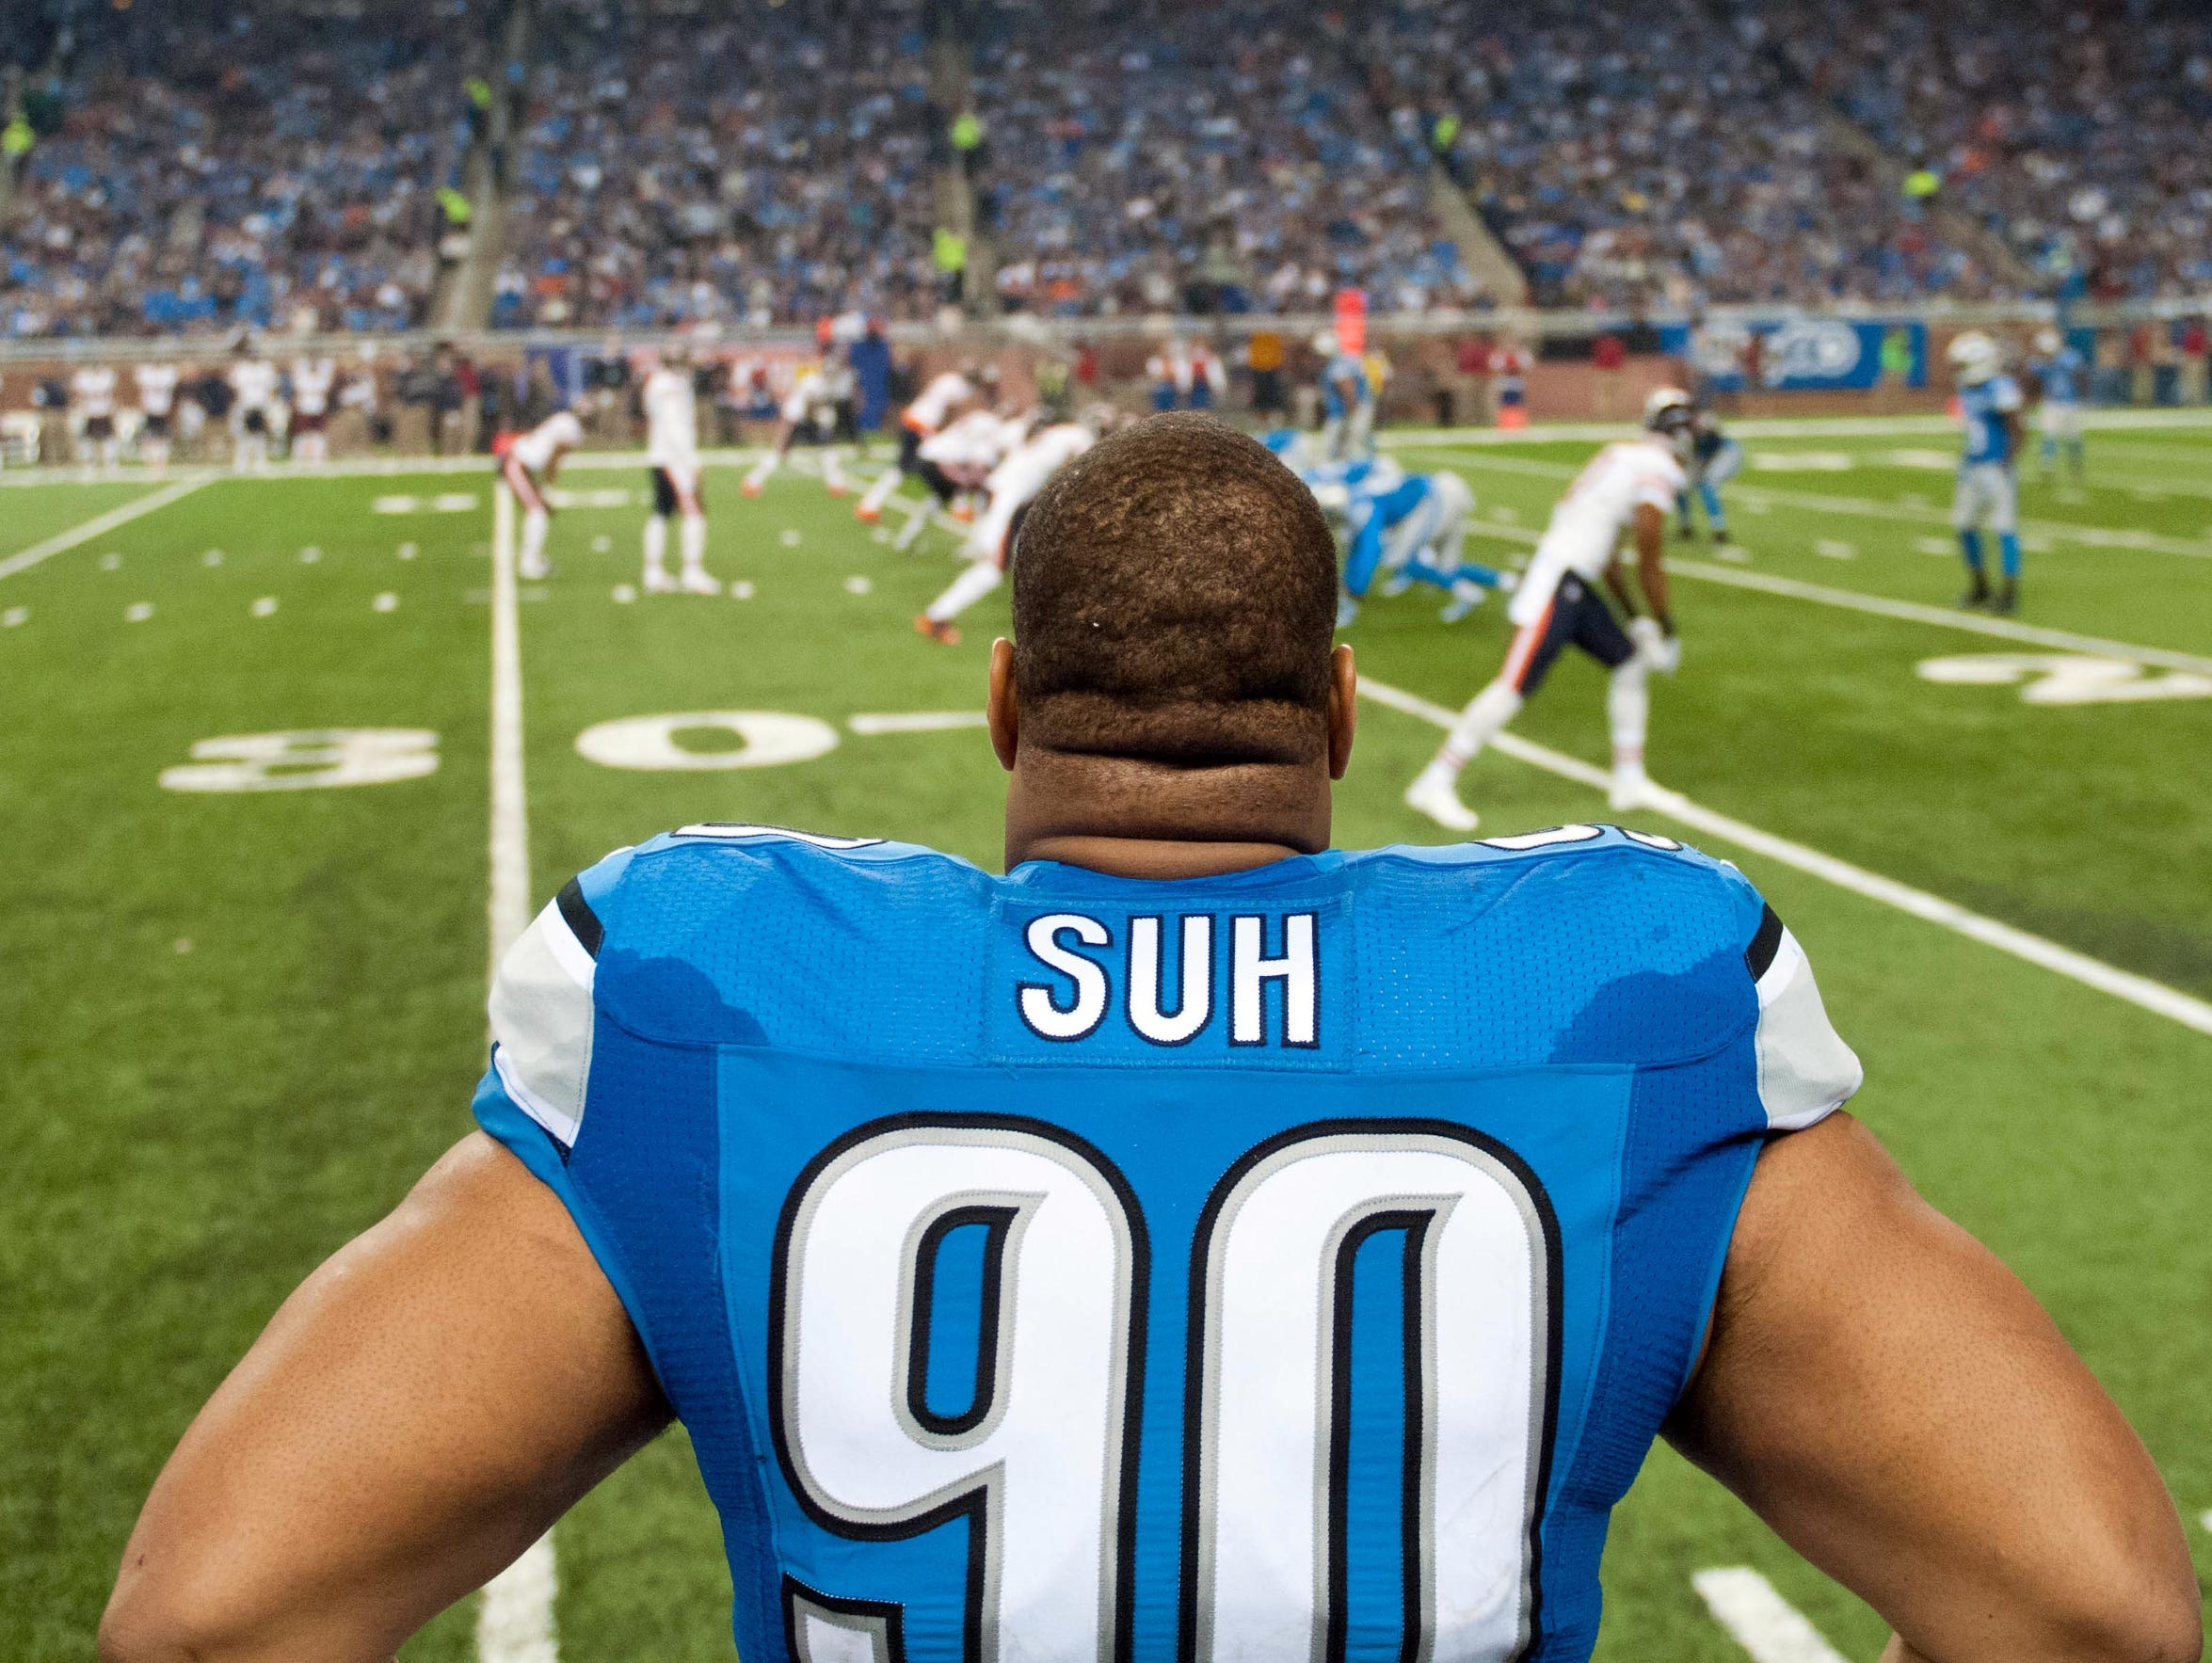 Ndamukong Suh vows he will stay close with the city